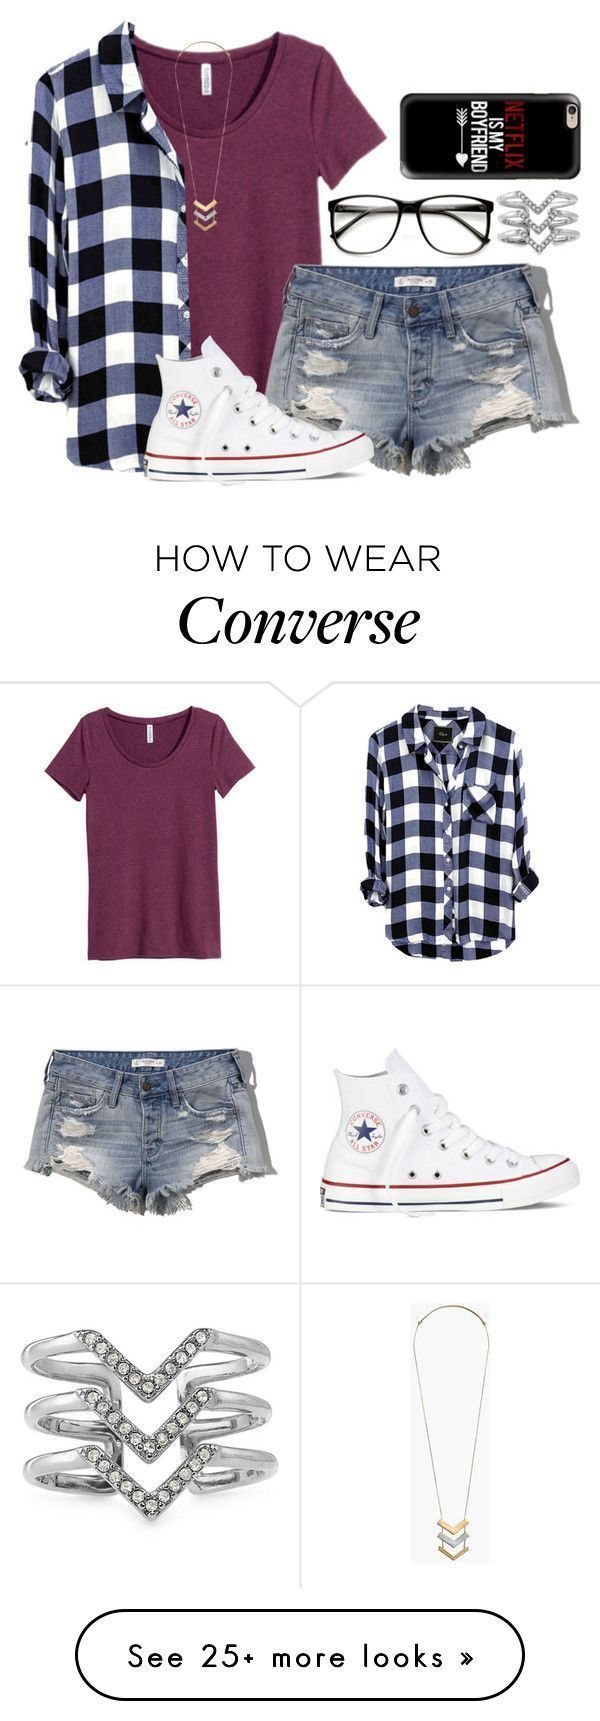 Converse Sets - My blog dezdemon-clothing4women.xyz - clothing, for girls, college, nike, fall, casual clothes *ad